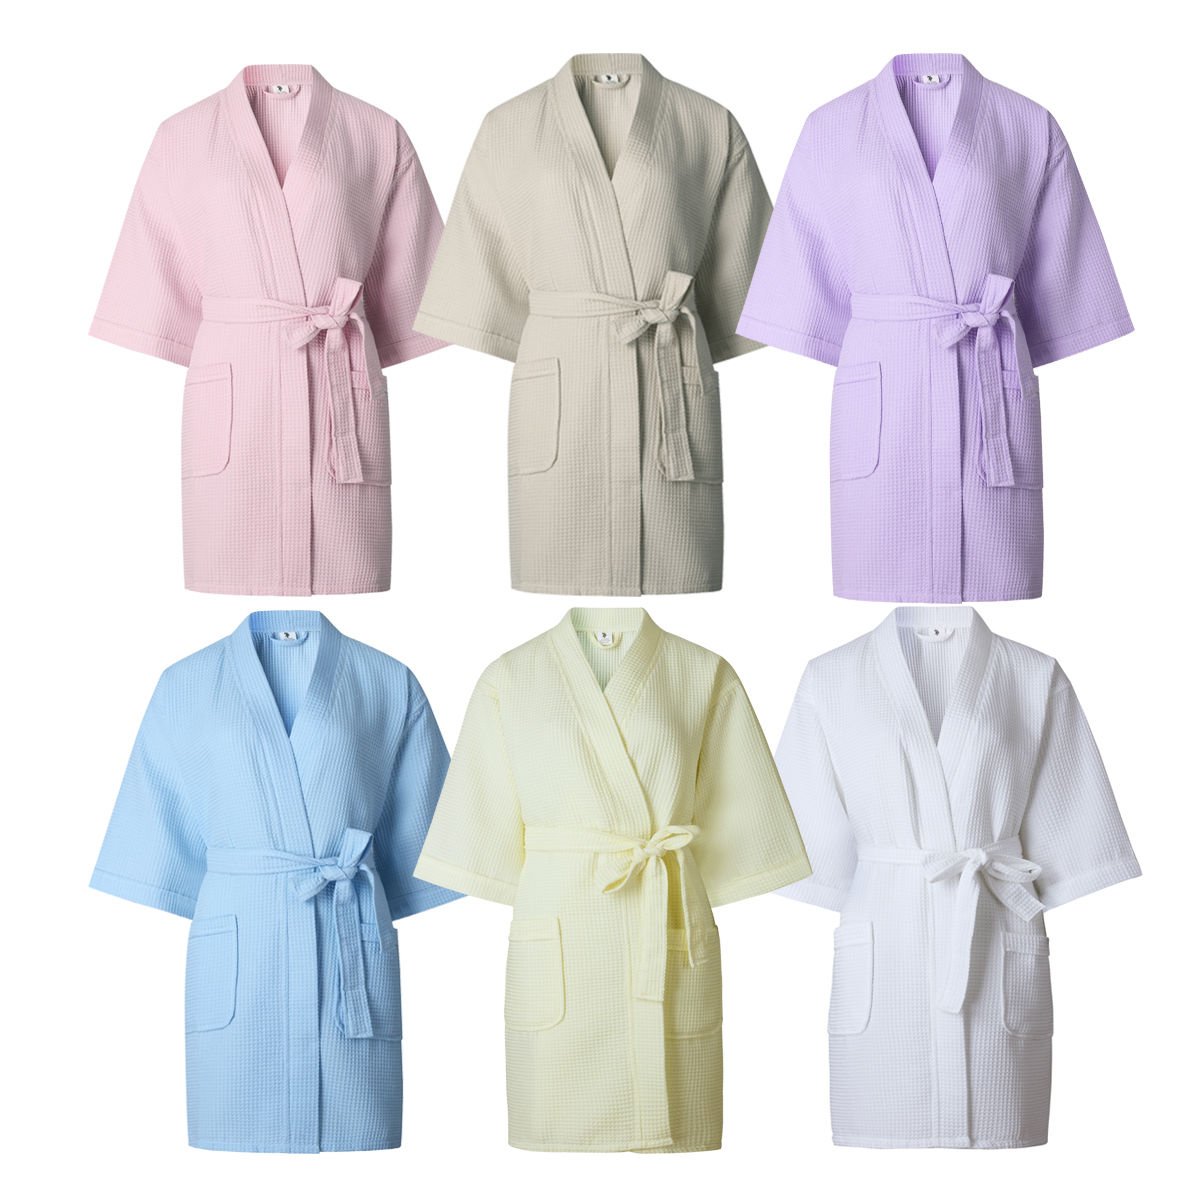 Top 9 Most Popular Cotton Terry Bath Robes For Hotel Near Me And Get Free Shipping A0icln9k